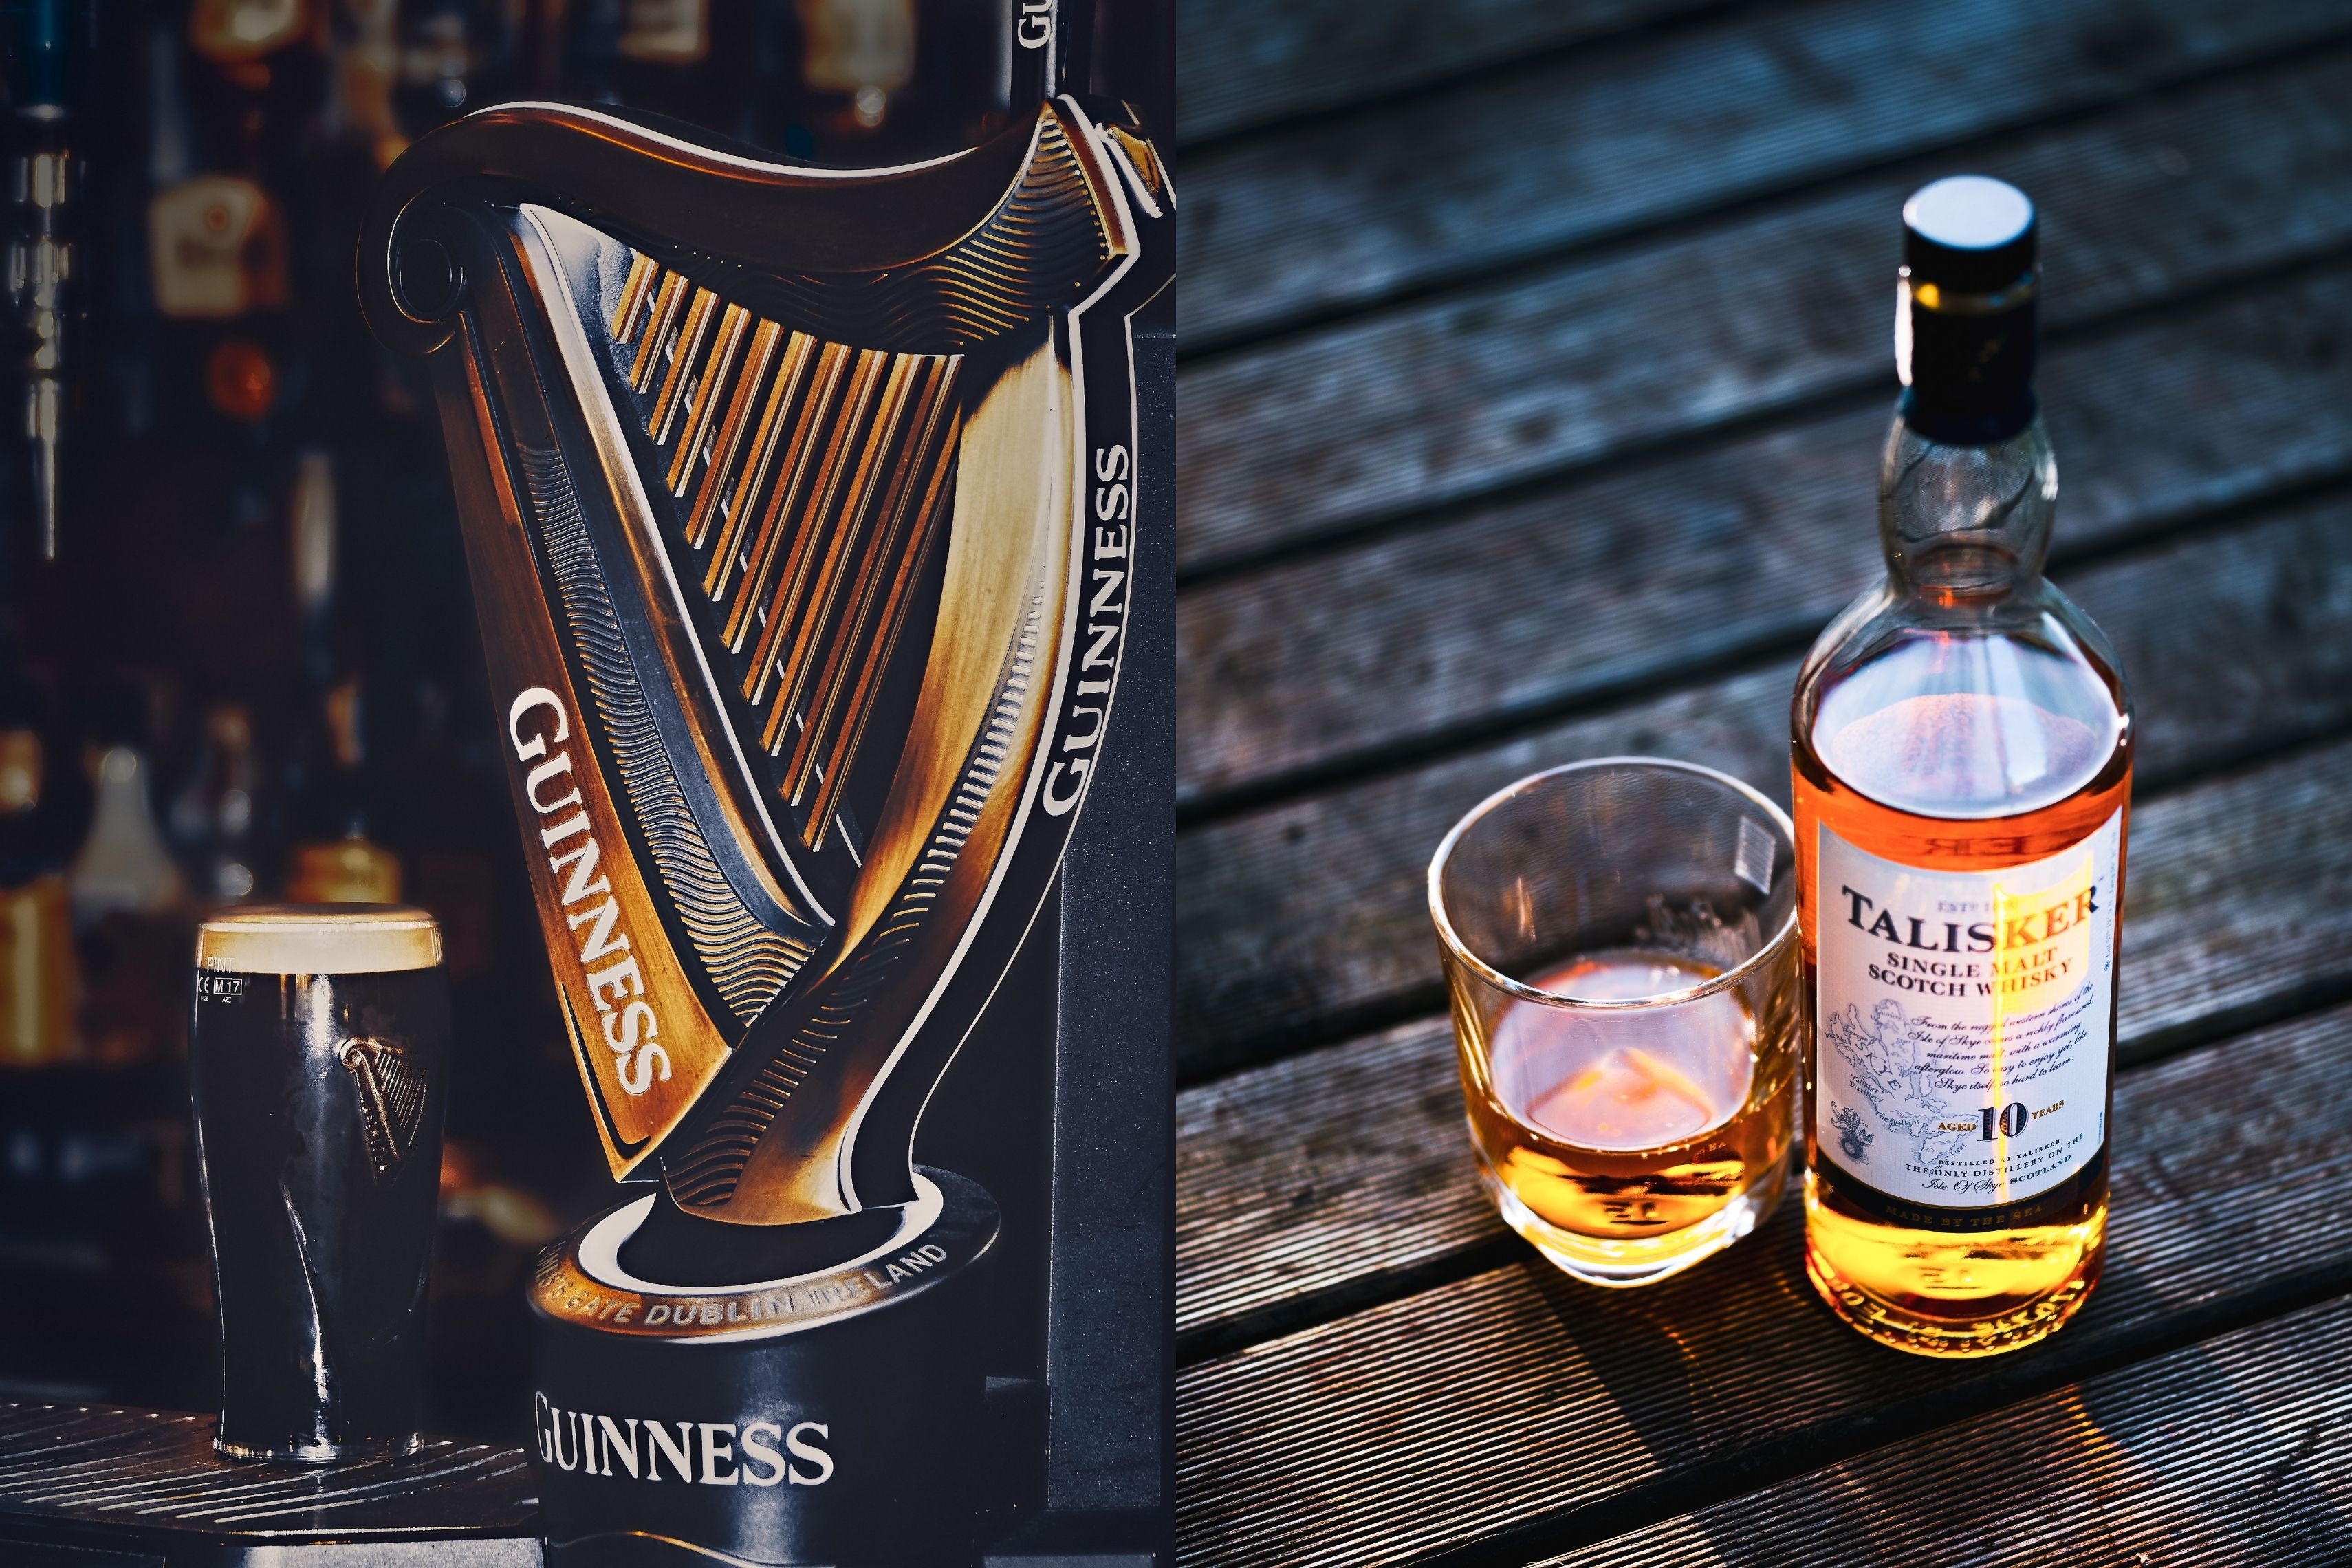 Guiness Whisky, Scottish and irish drinks